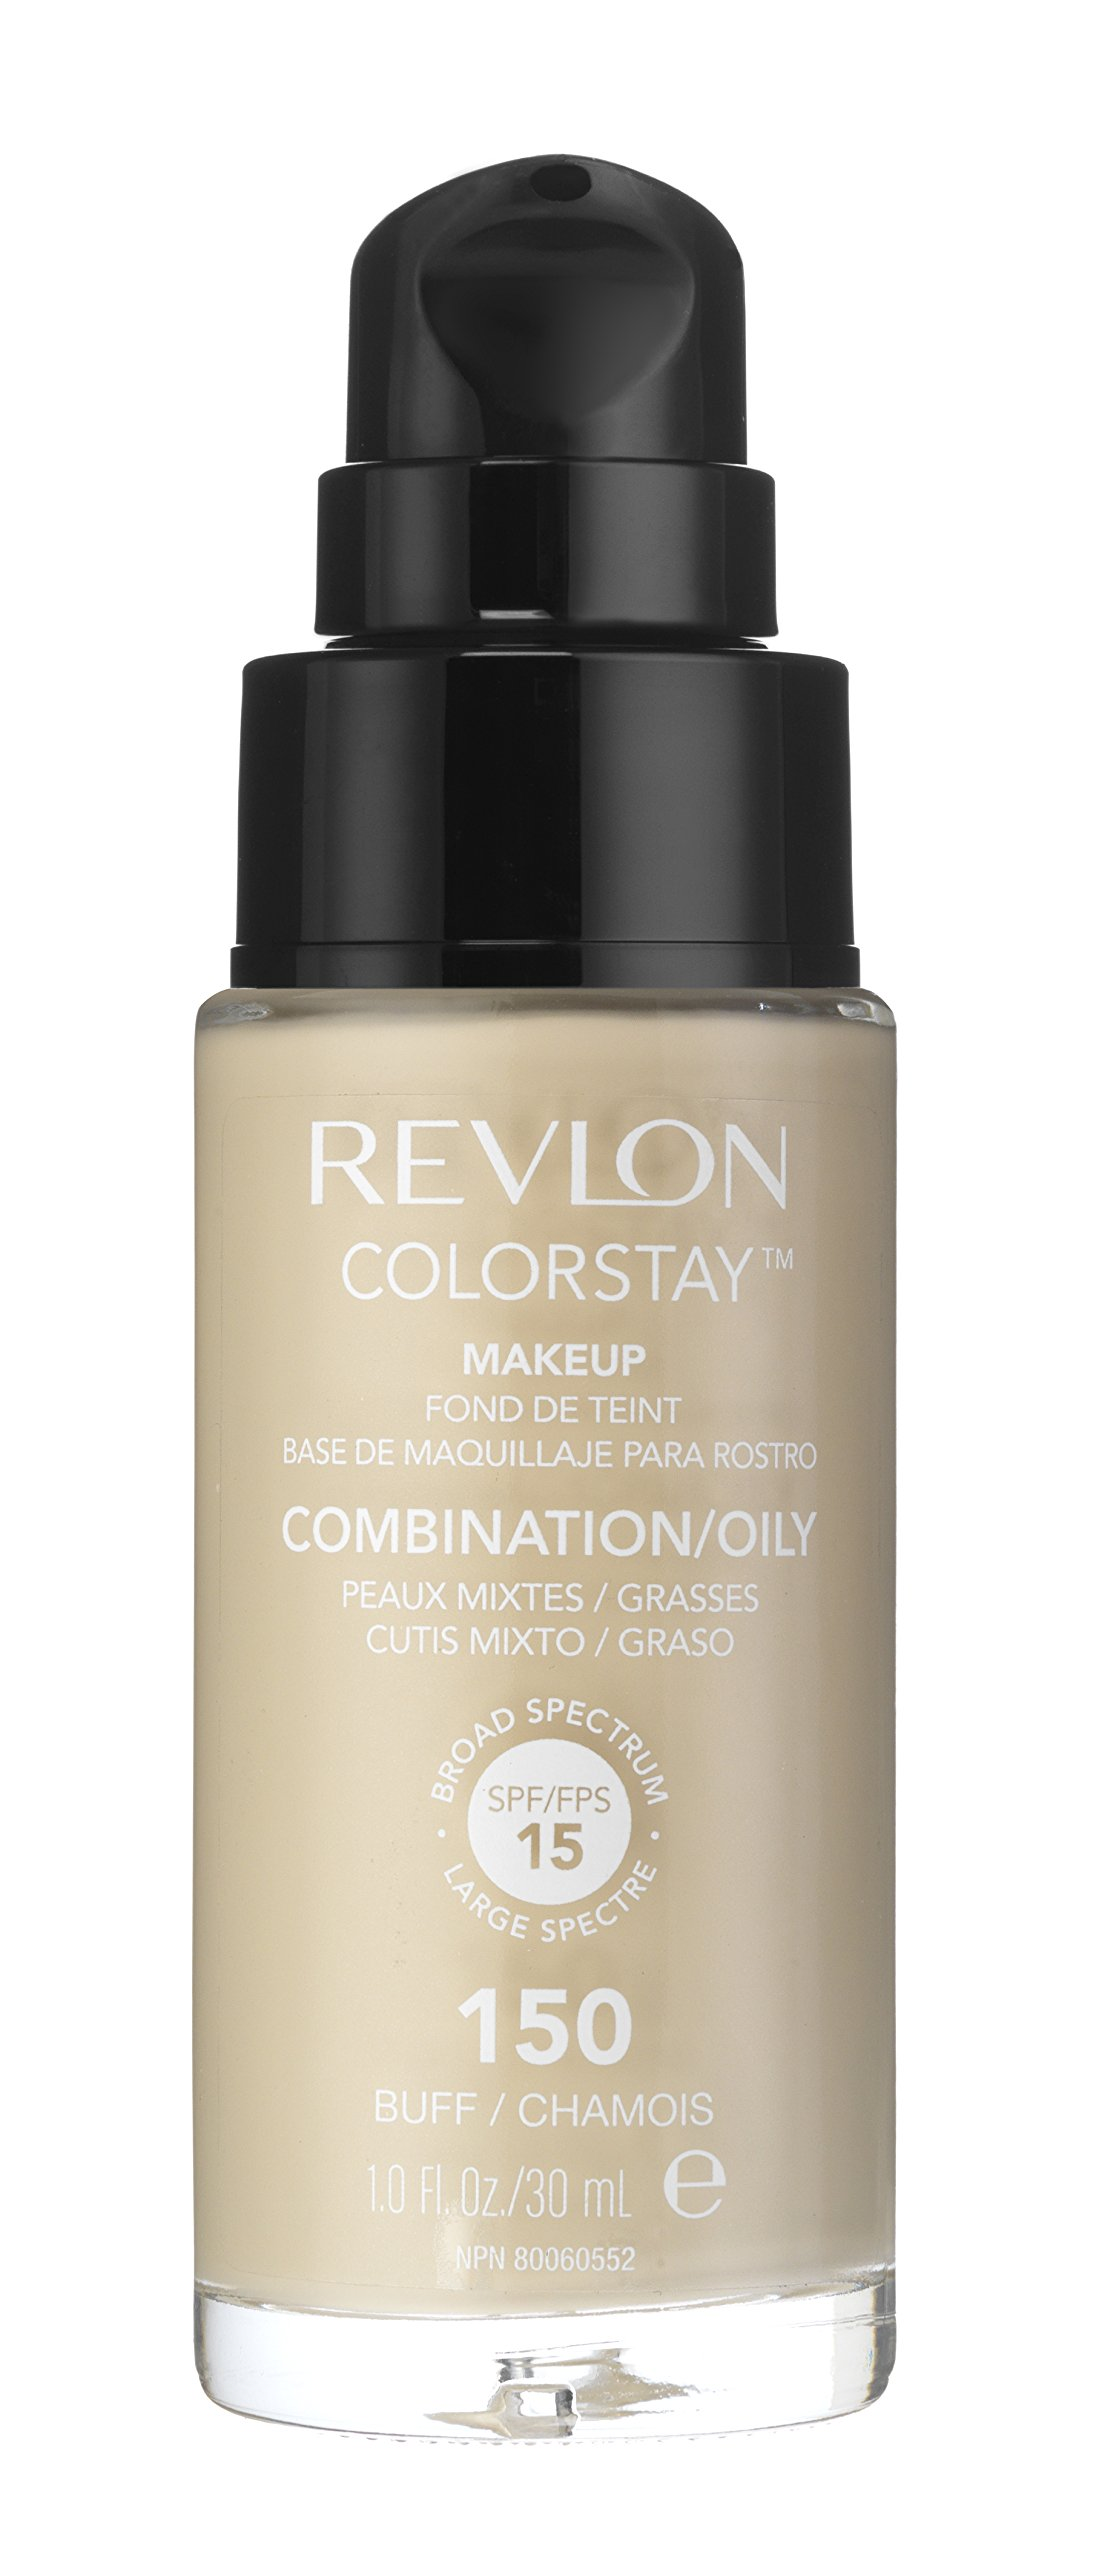 Revlon ColorStay Makeup for Combi/Oily Skin Buff 150, 1er Pack product image